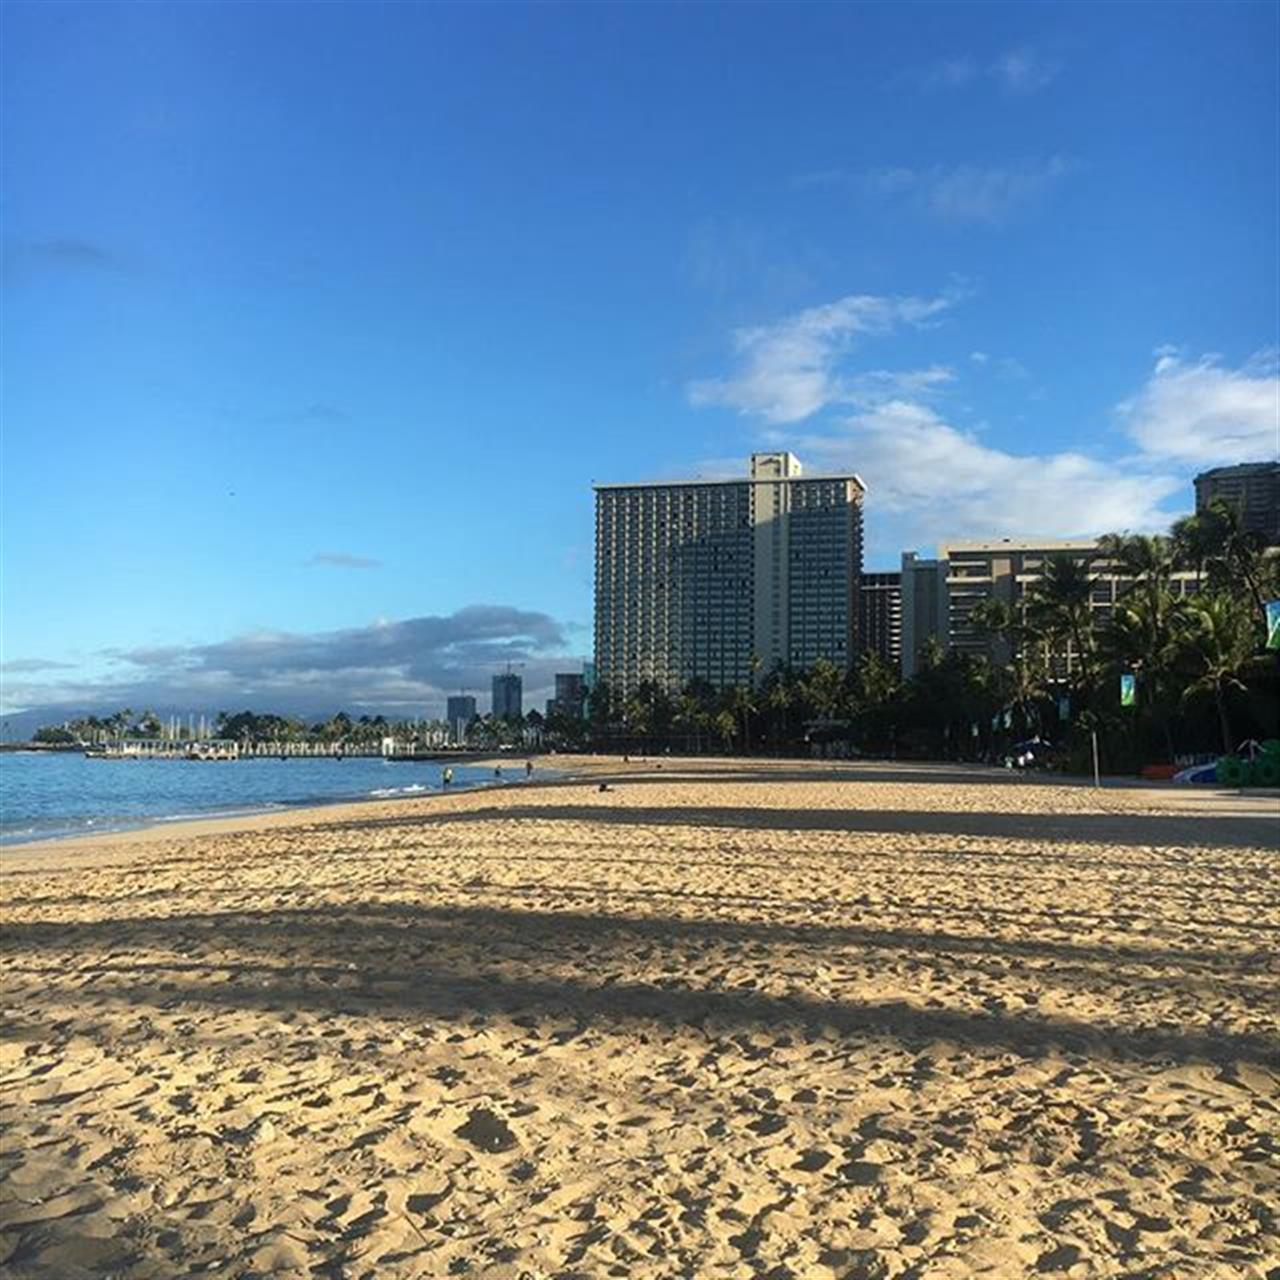 #morningwalk #waikikibeach #happyDOS #hawaiilife